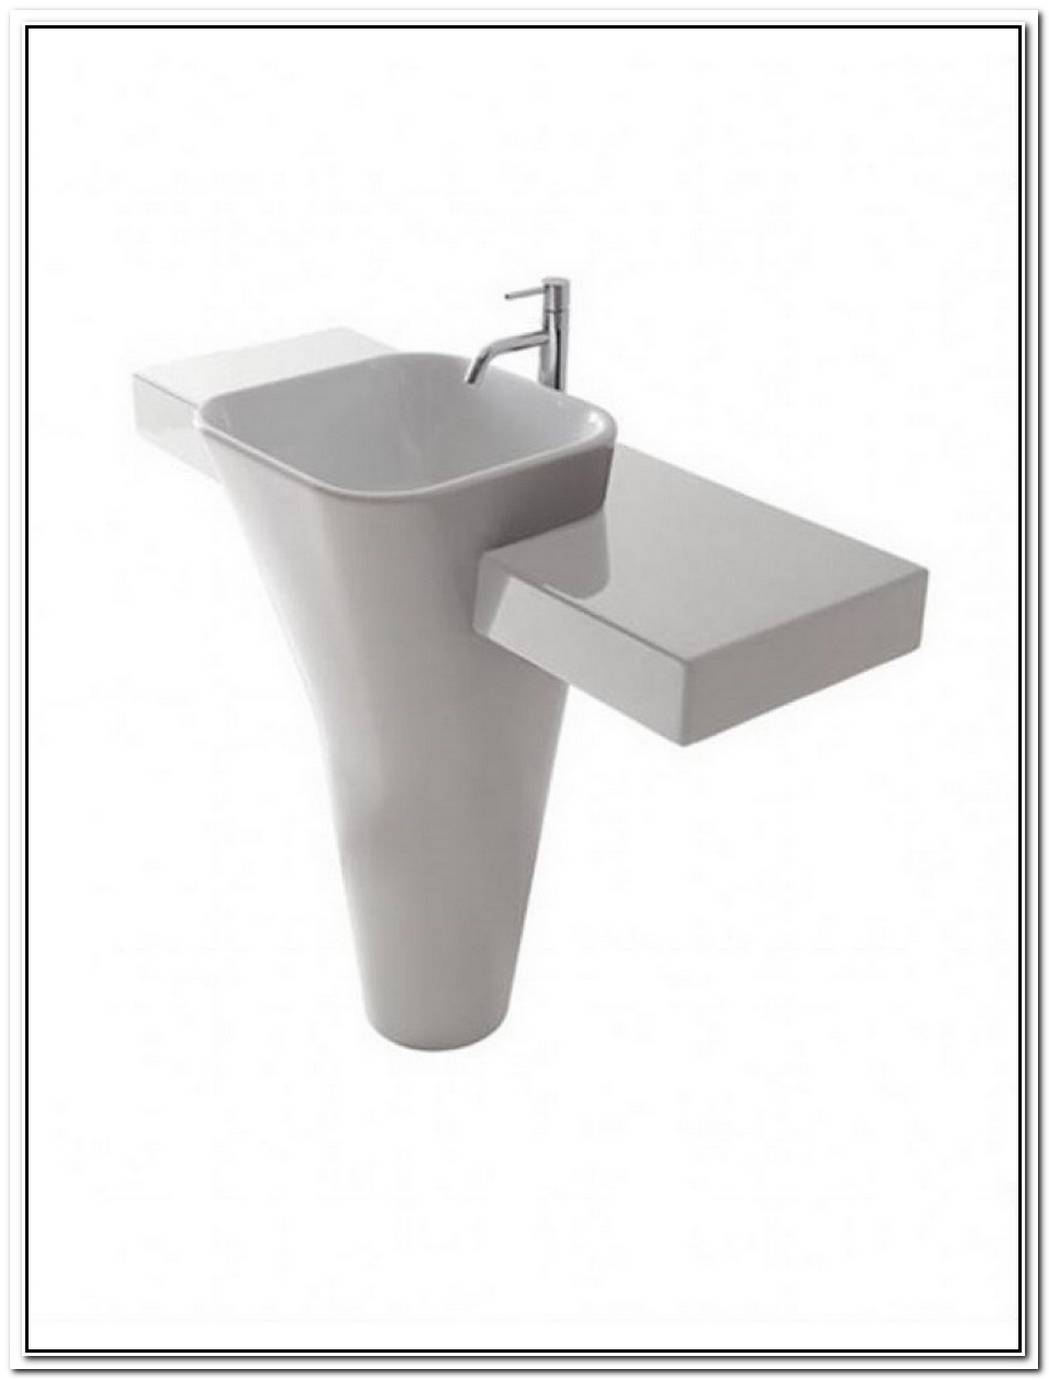 Orbis Ceramic Single Washbasin By Galassia